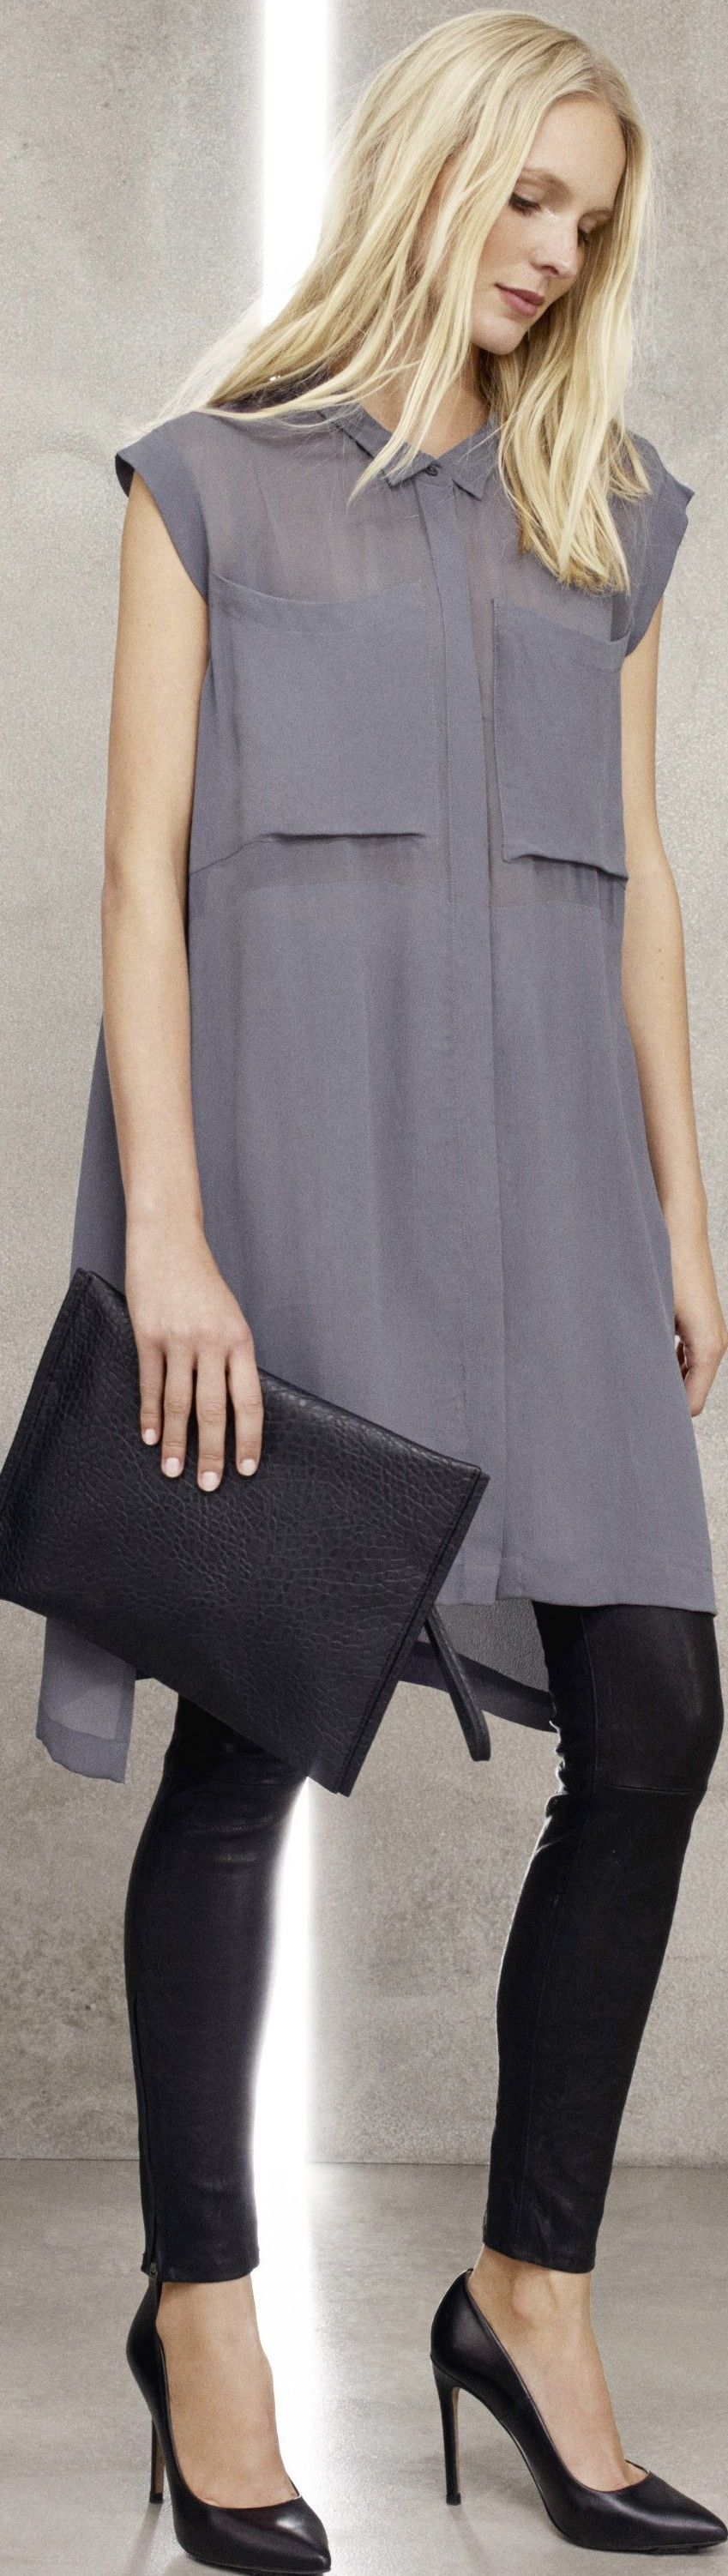 latest fashion trend  grey outfit for women  tunic top